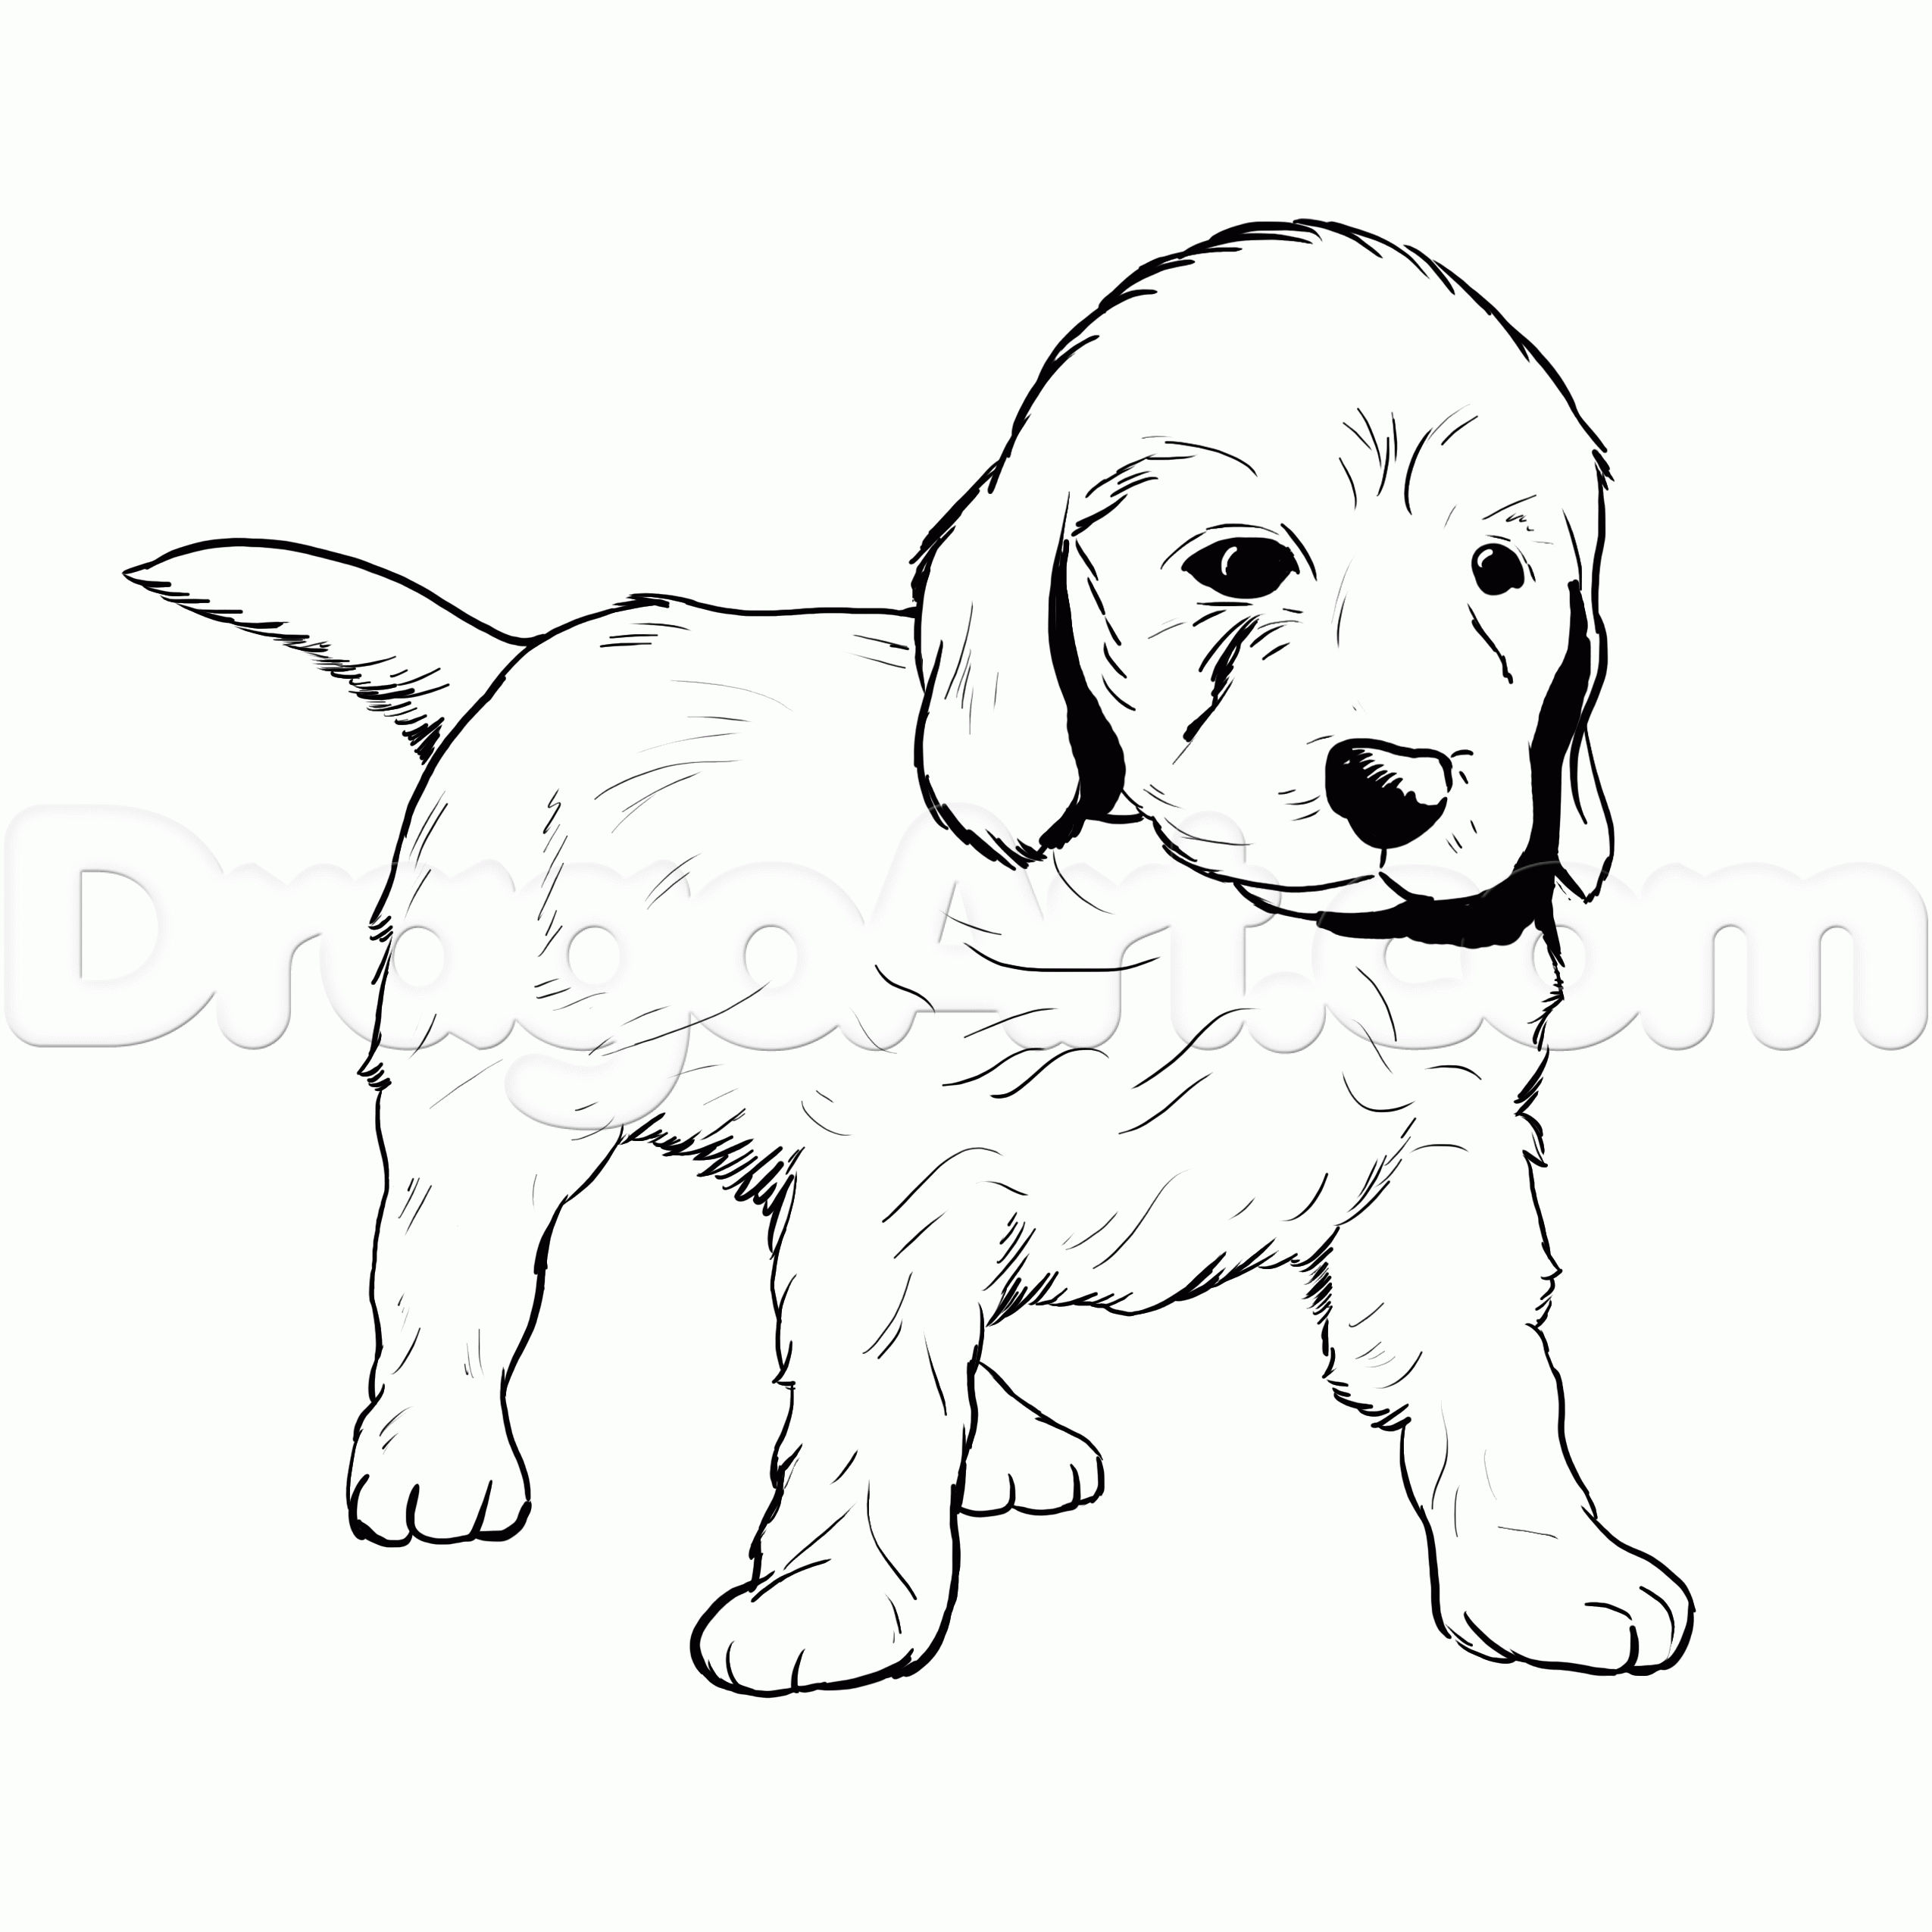 Golden Retriever Coloring Page - Golden Retriever Clip Art Black and White Sketch Coloring Page